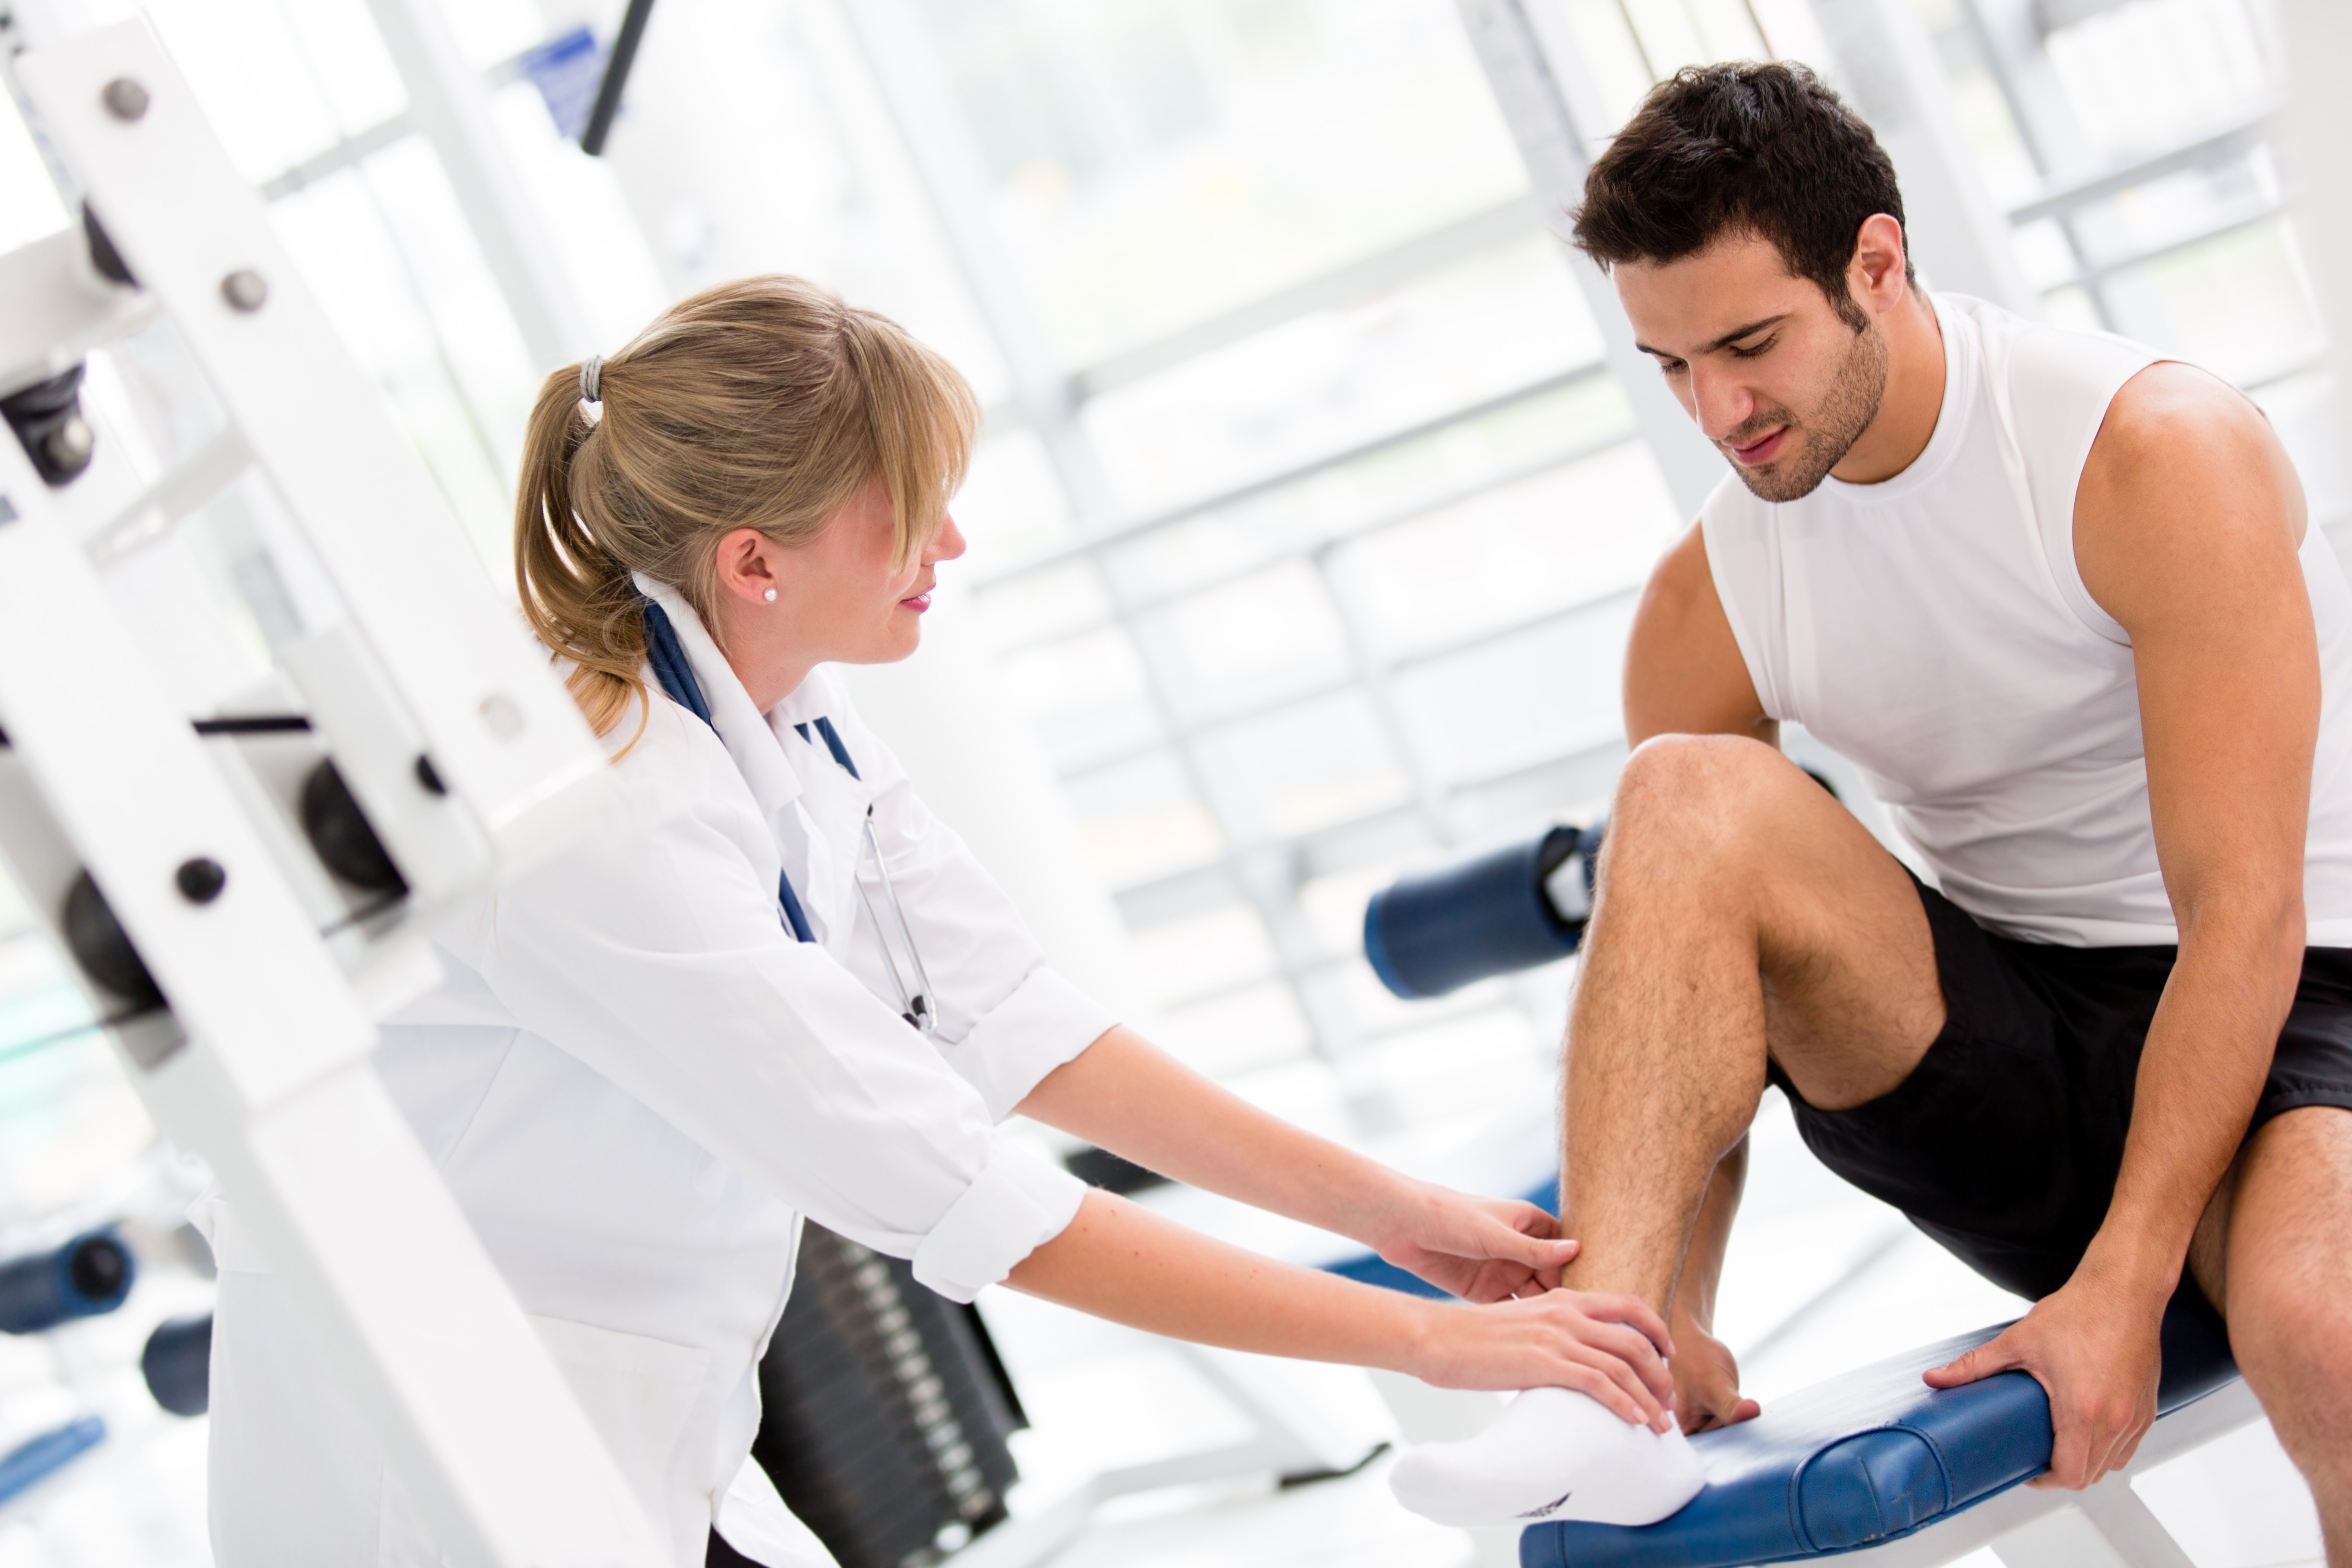 Injured man at the gym feeling pain in his ankle